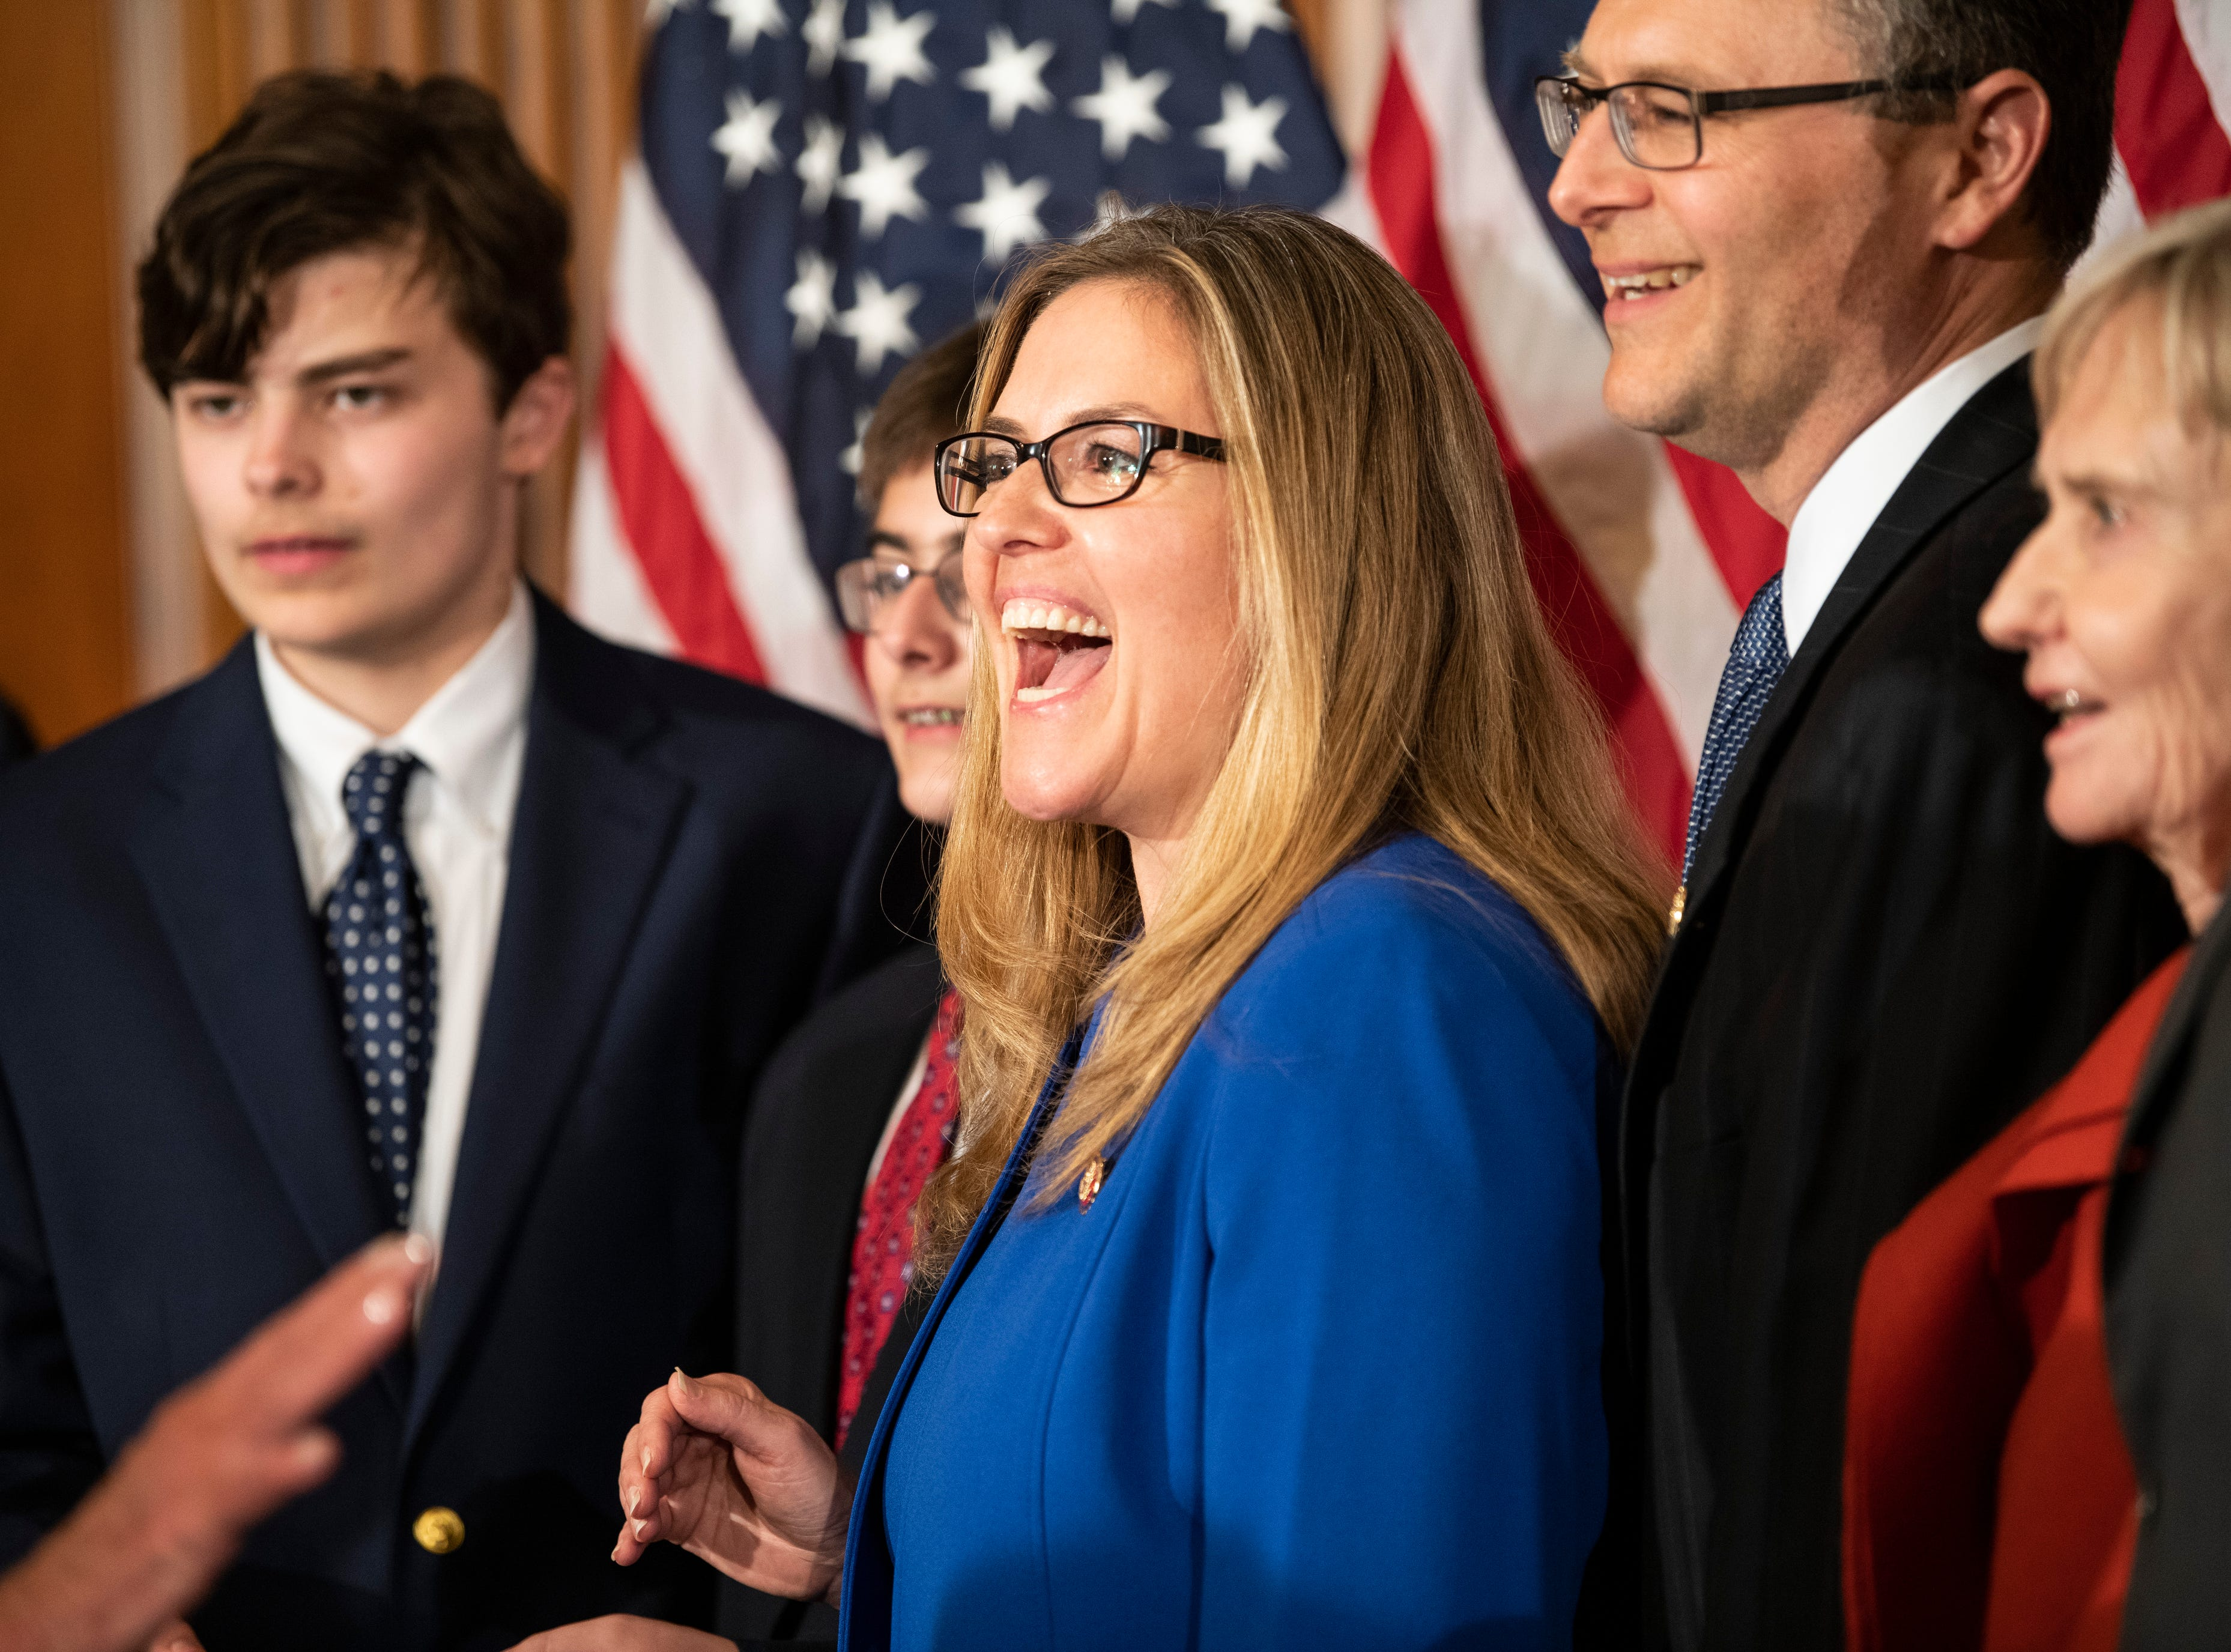 Rep. Jennifer Wexton (D, VA) enjoys a laugh while waiting to be sworn in by House Speaker Nancy Pelosi as a member of the 116th Congress.